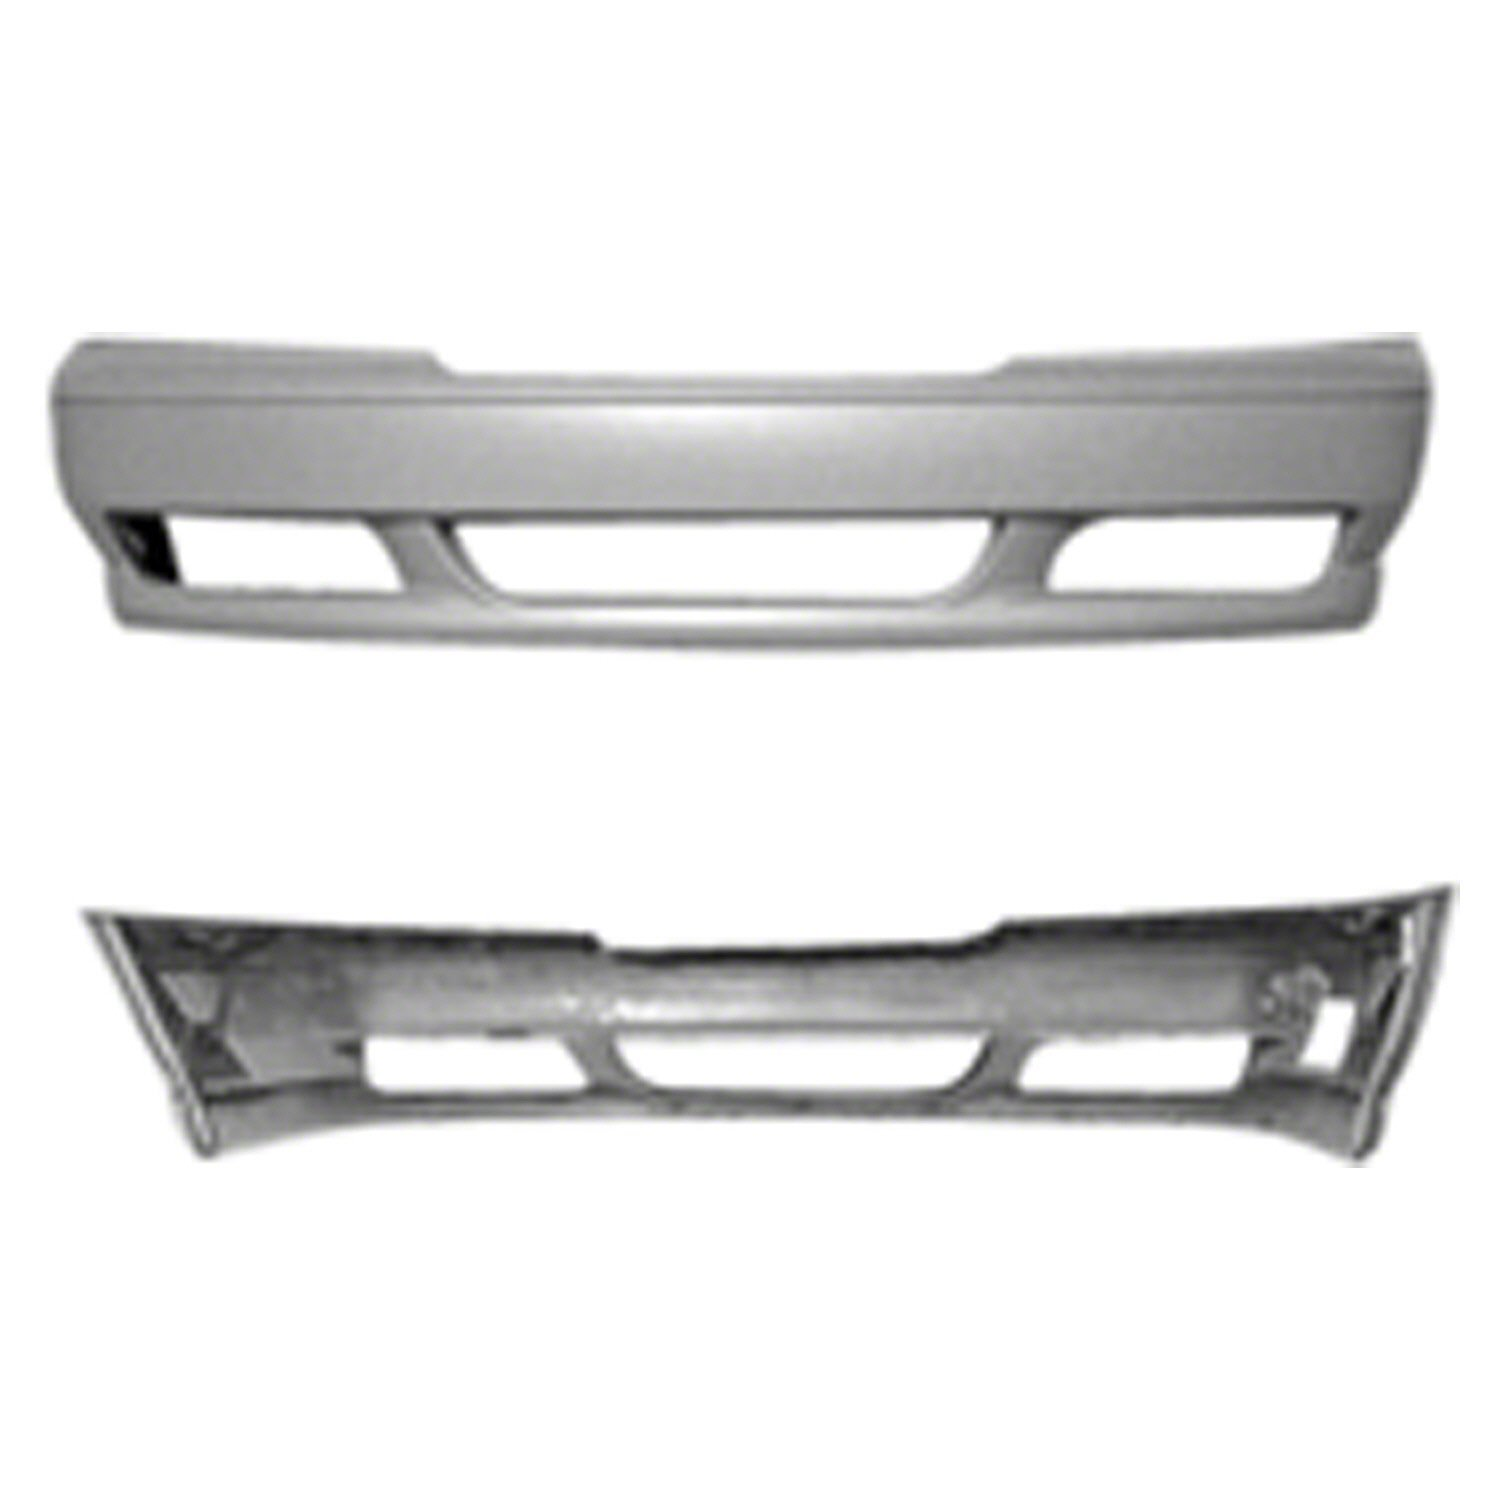 Crash Parts Plus Primed Primed Front Bumper Cover for 98-00 Volvo S70 VO1000130